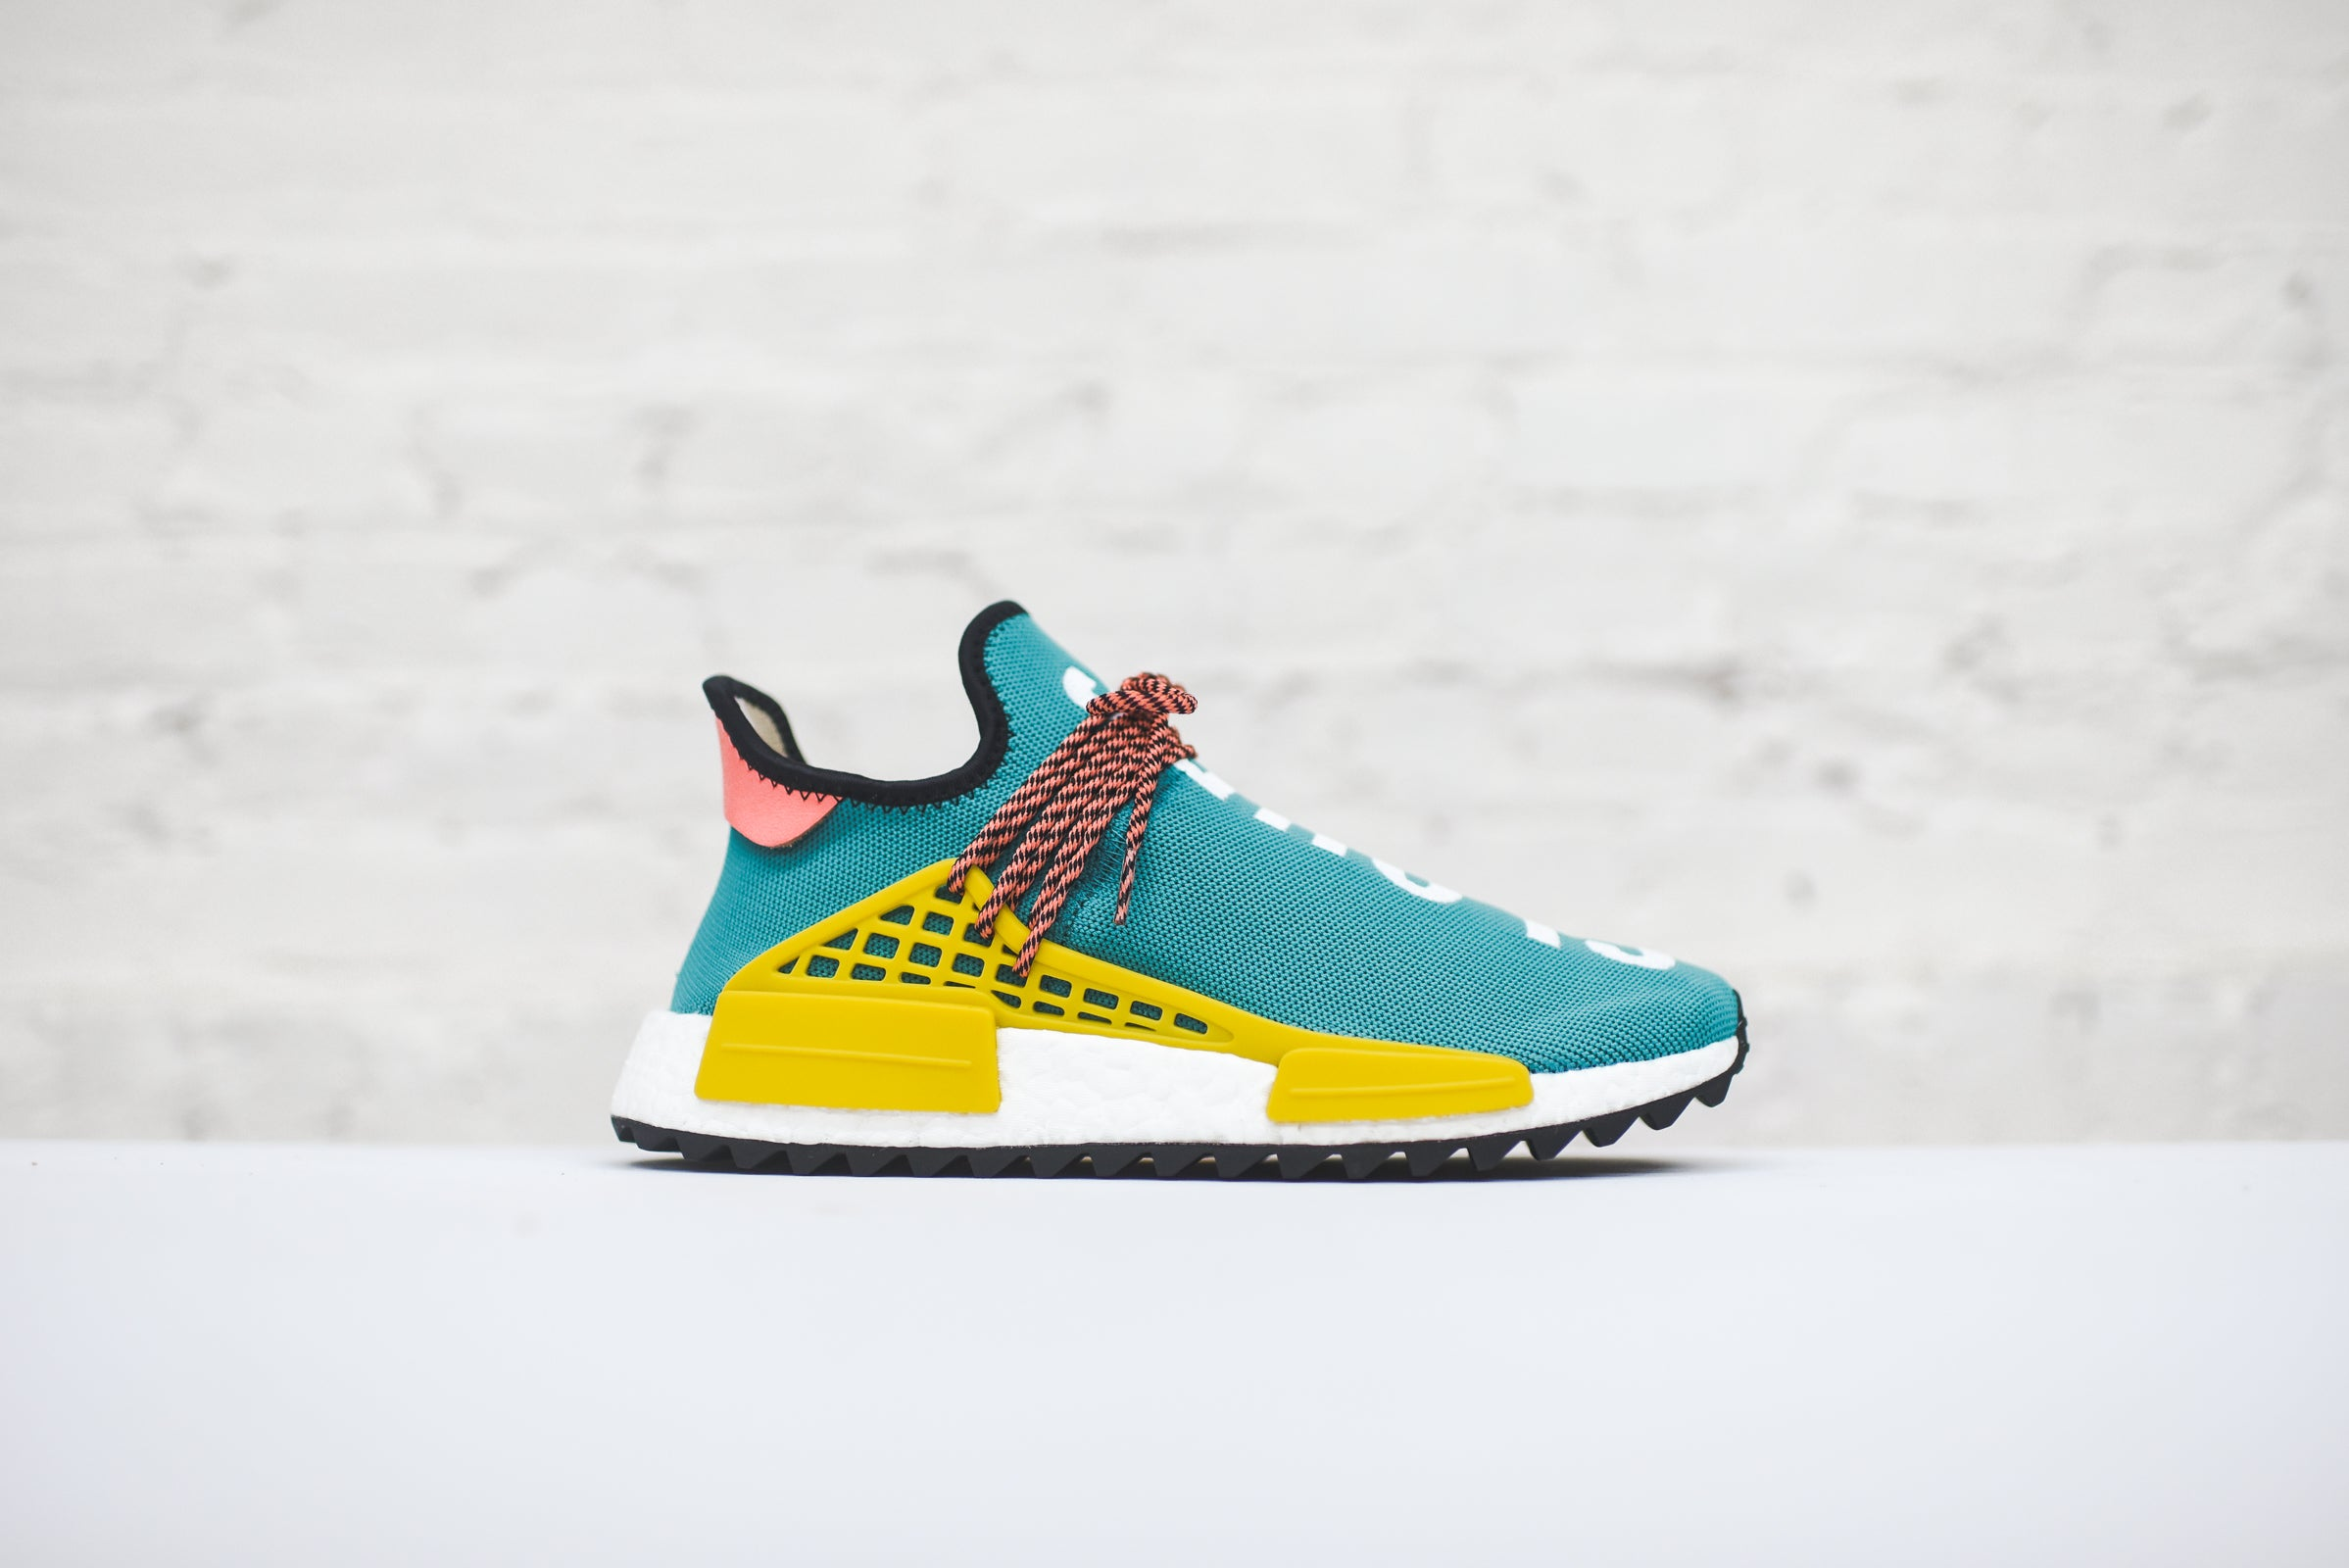 6d4672b94 adidas Originals x Pharrell NMD Hu Trail Pack. November 27